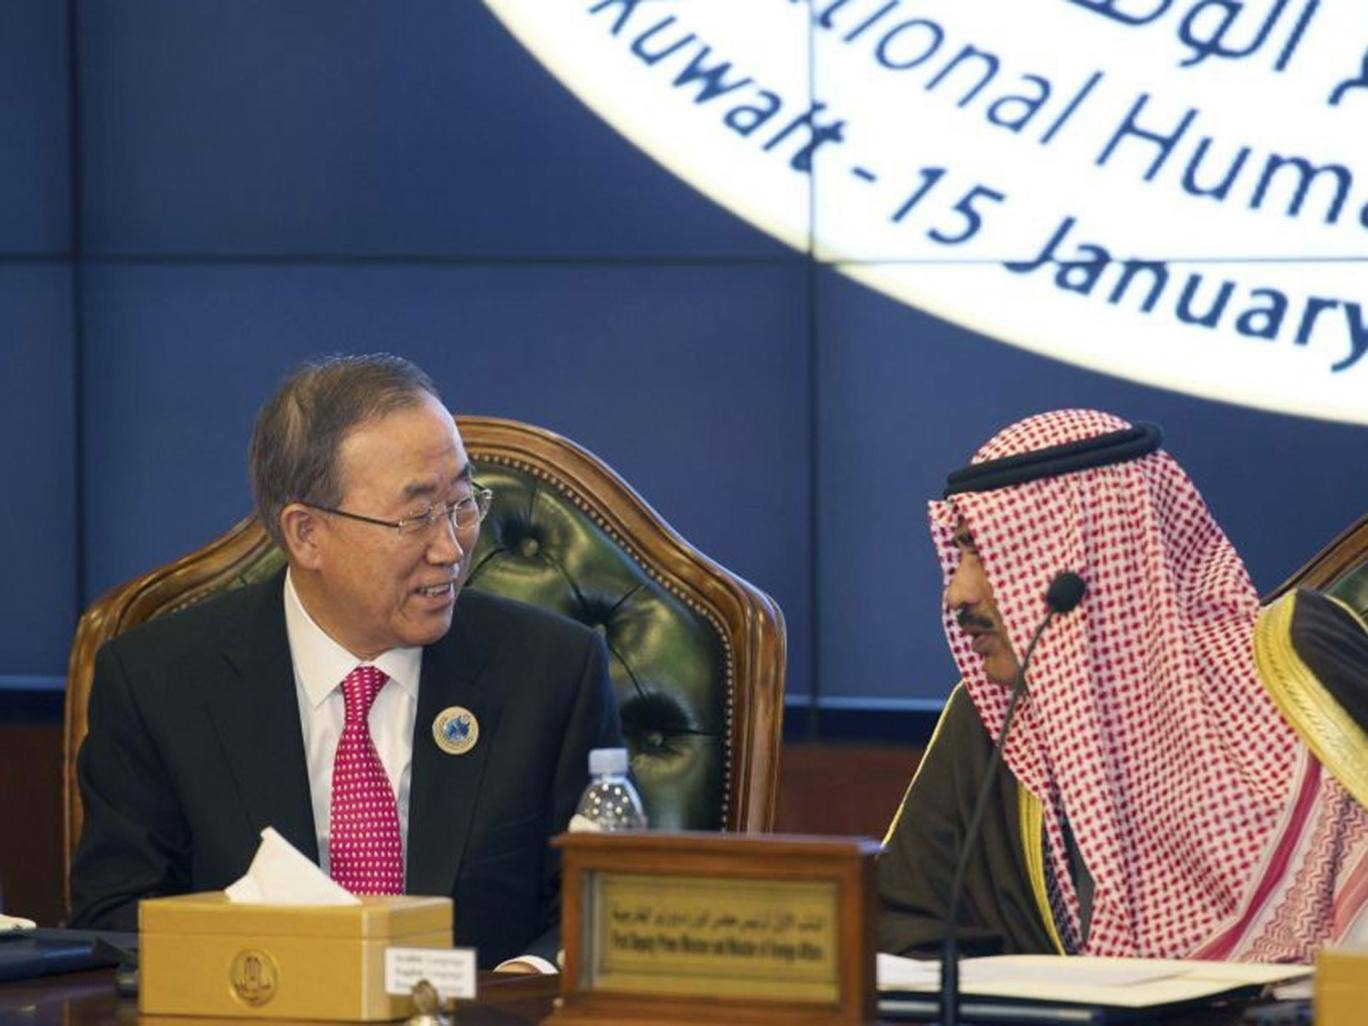 United Nations Secretary General Ban Ki-Moon talks to Kuwait's Minister of Foreign Affairs Sheikh Sabah alKhalid AlSabah at the end of the Second International Humanitarian Pledging Conference for Syria at Bayan Palace in Kuwait January 15, 2014